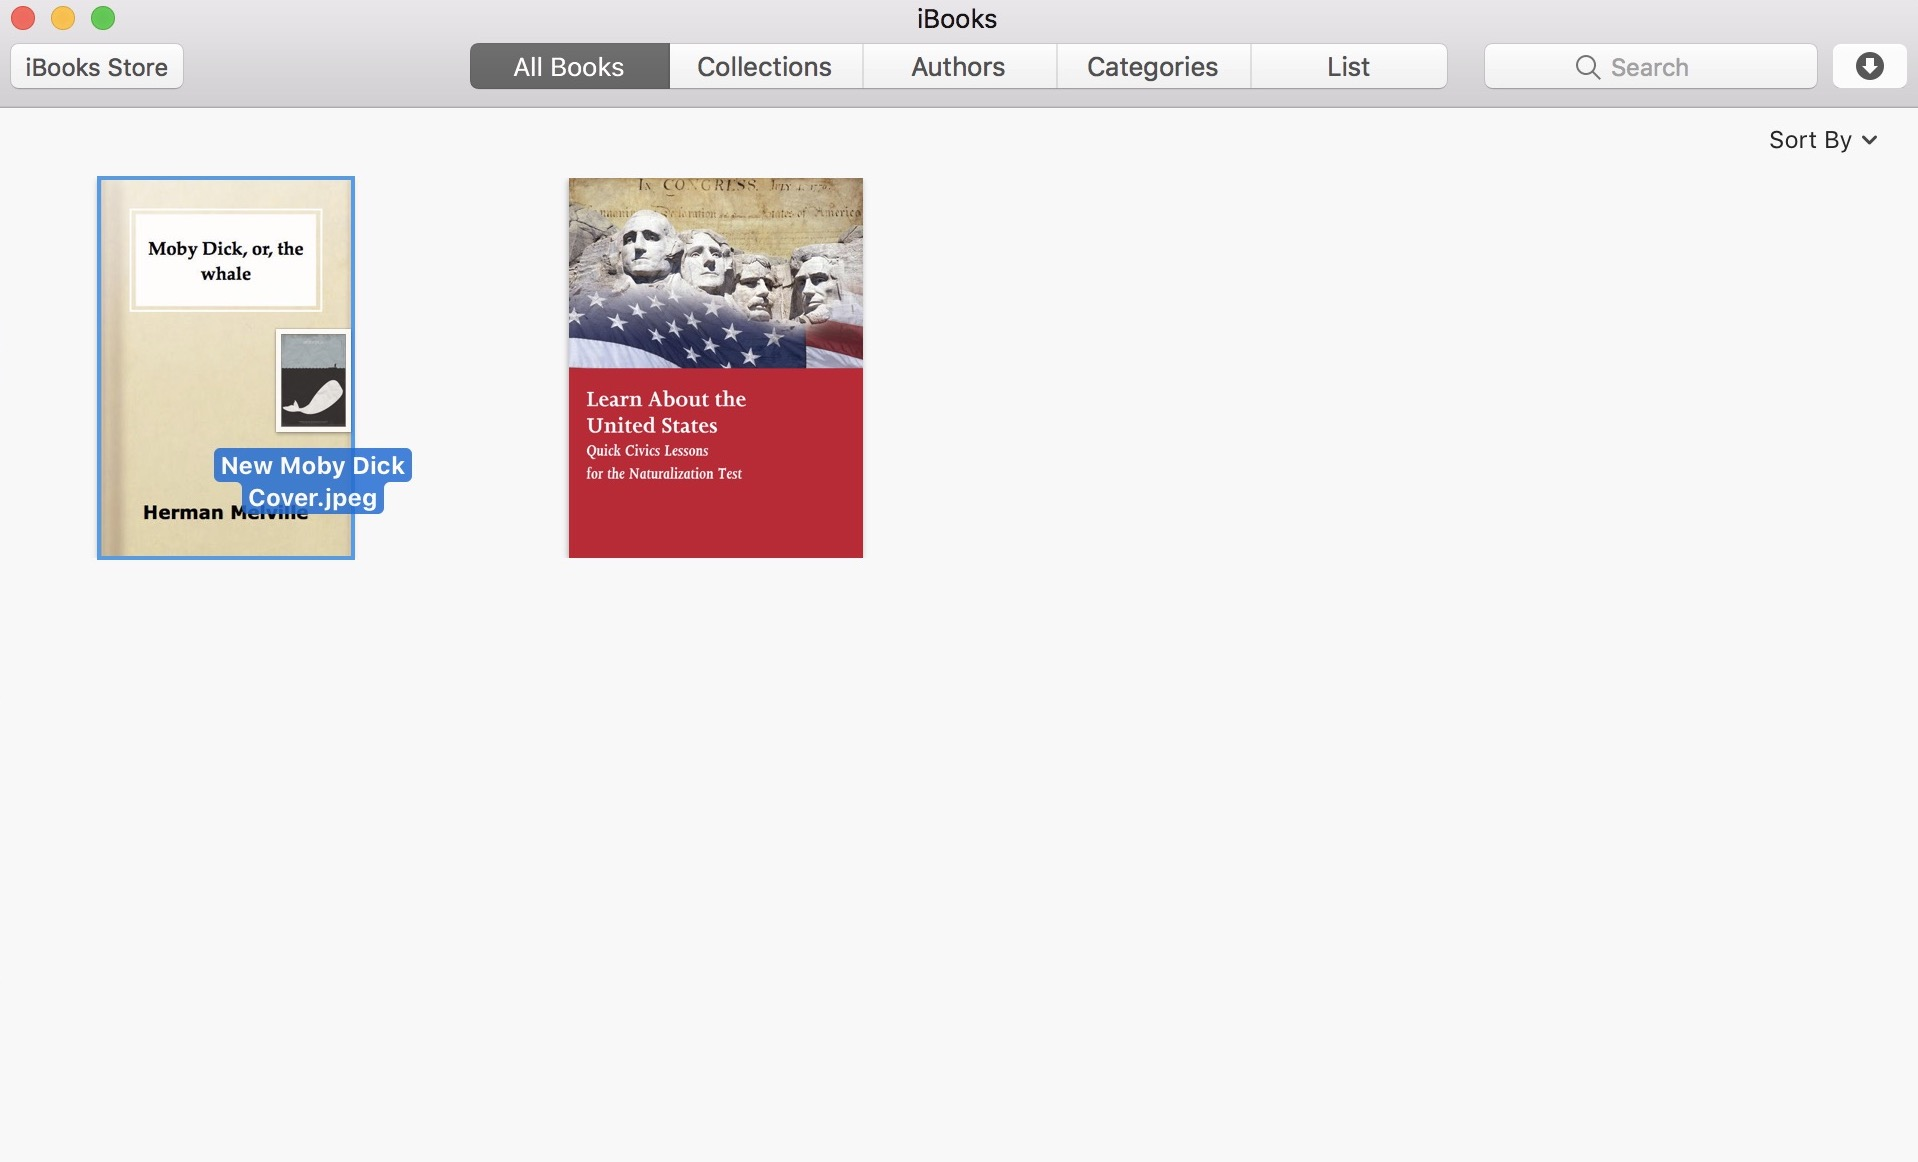 How to change the cover of a book in iBooks